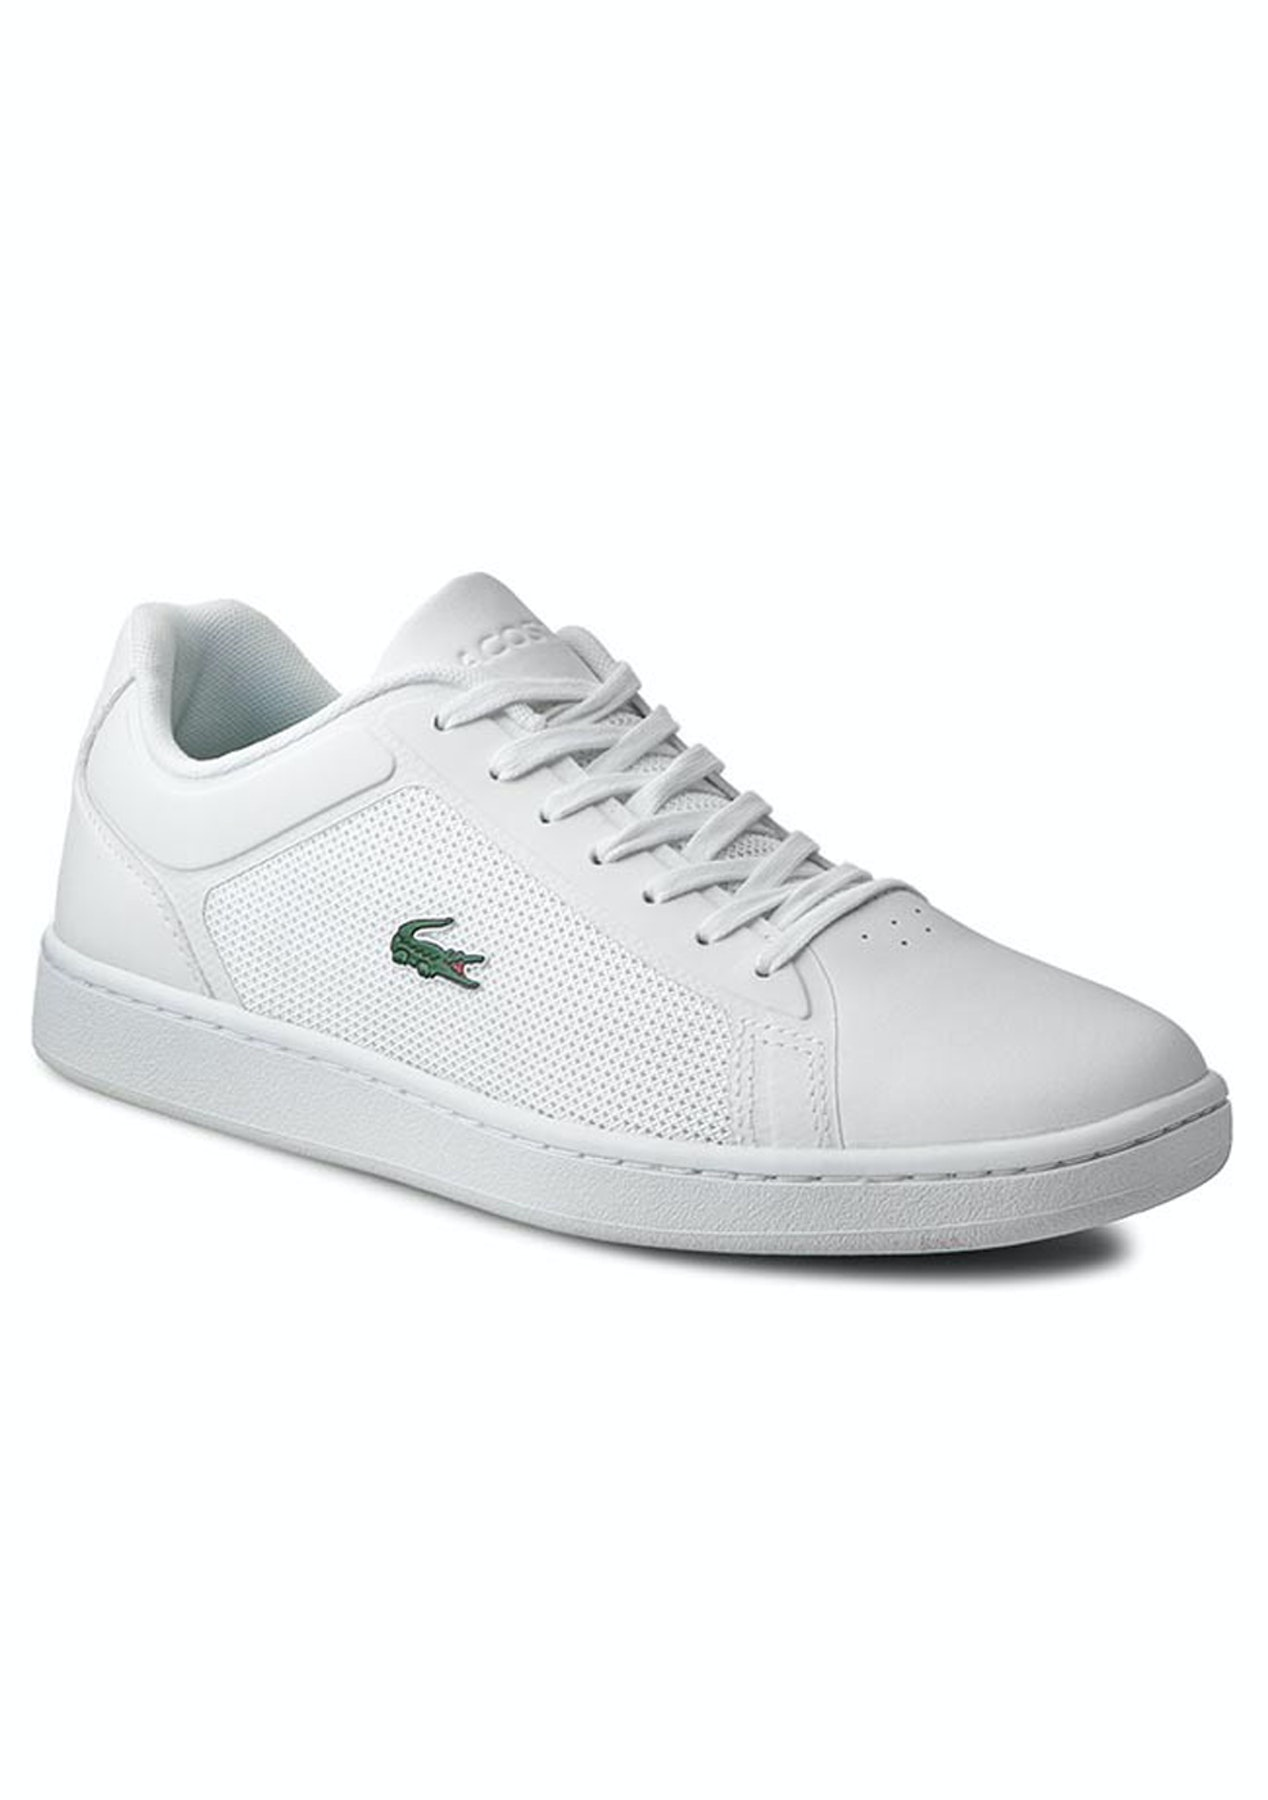 bca499f3841fd0 Mens Lacoste - Endliner 116 2 Spm - White - Lacoste 24 Hours Only - Onceit